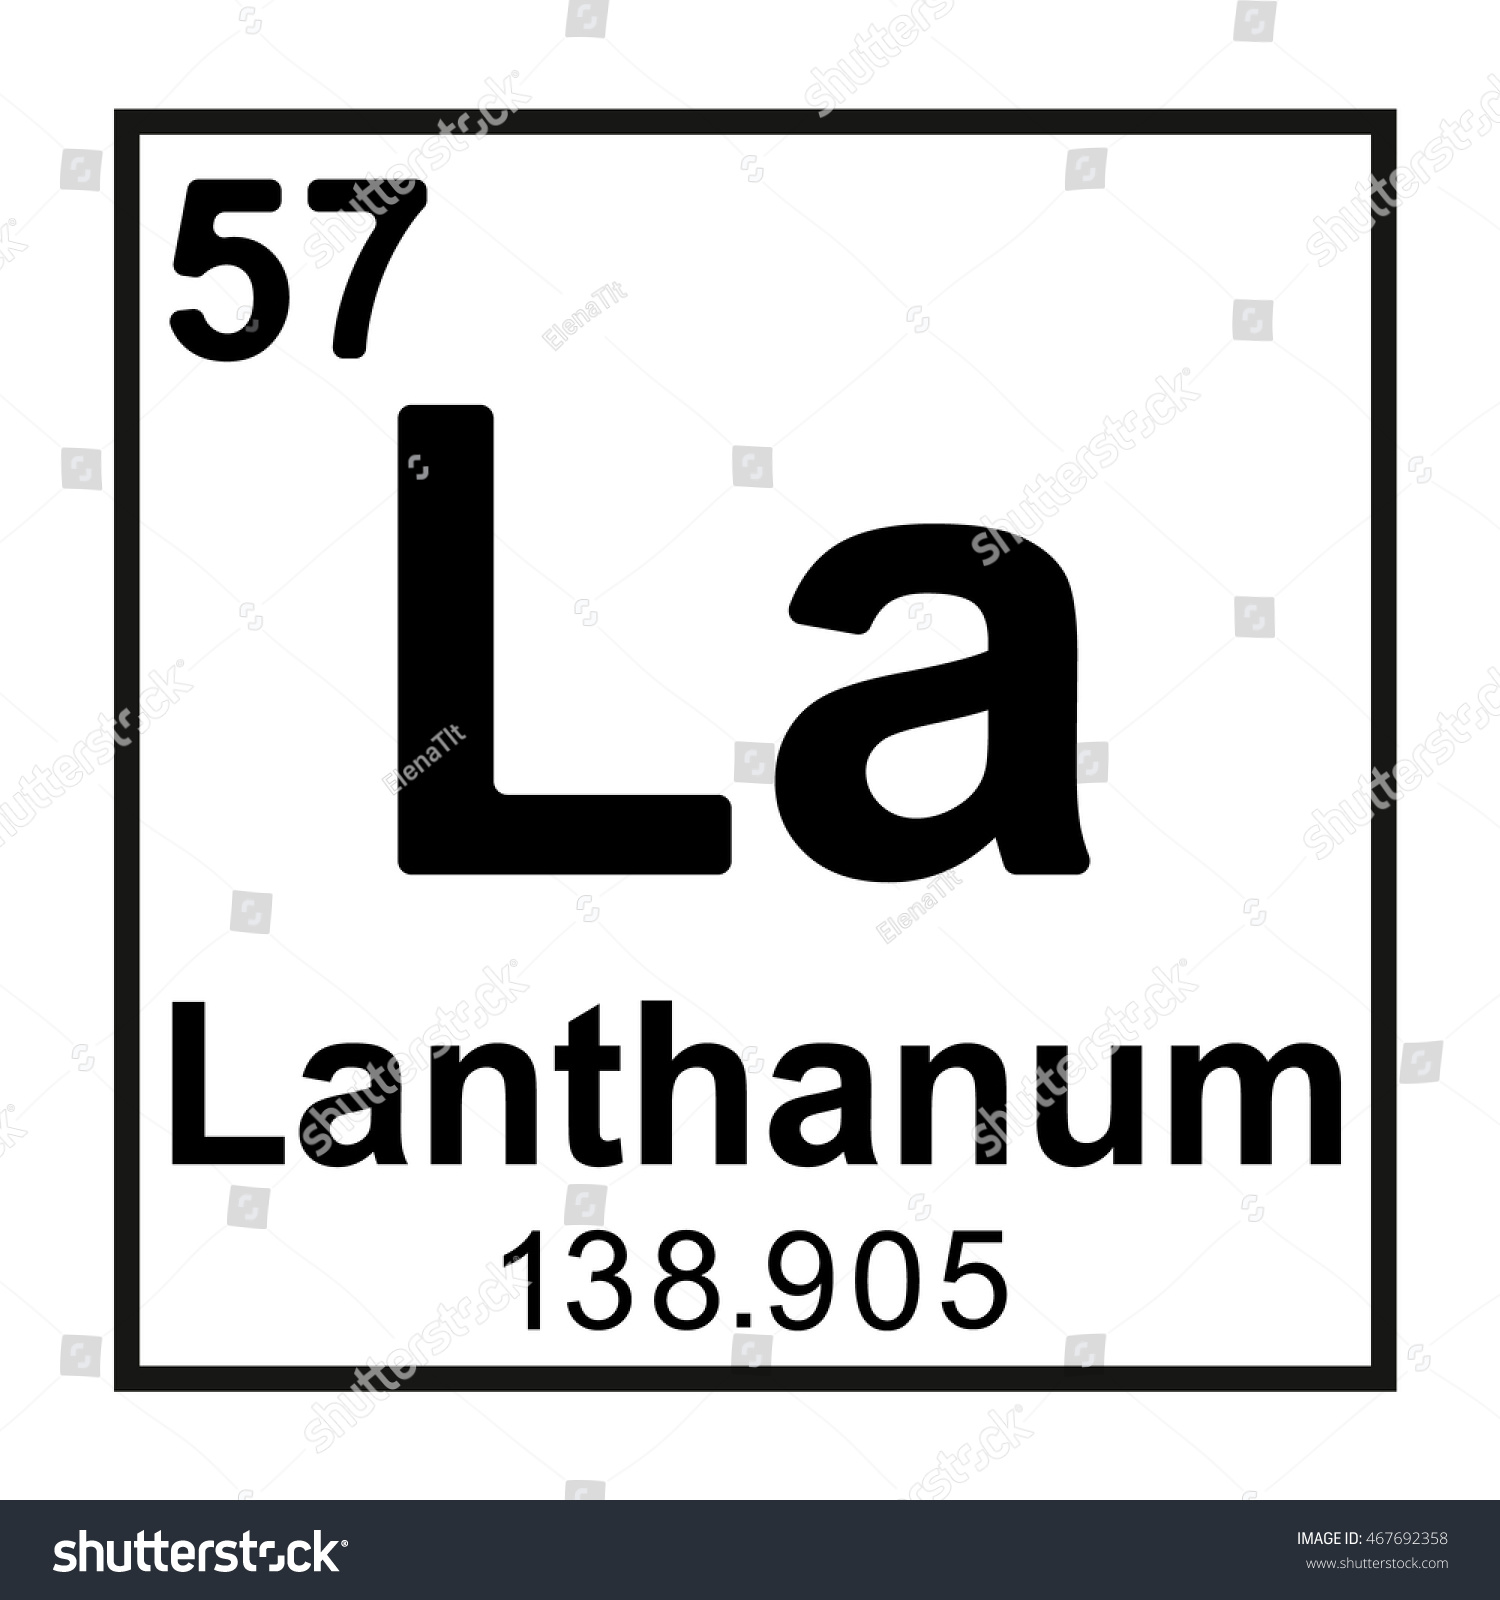 Periodic table element lanthanum stock vector 467692358 shutterstock periodic table element lanthanum gamestrikefo Image collections